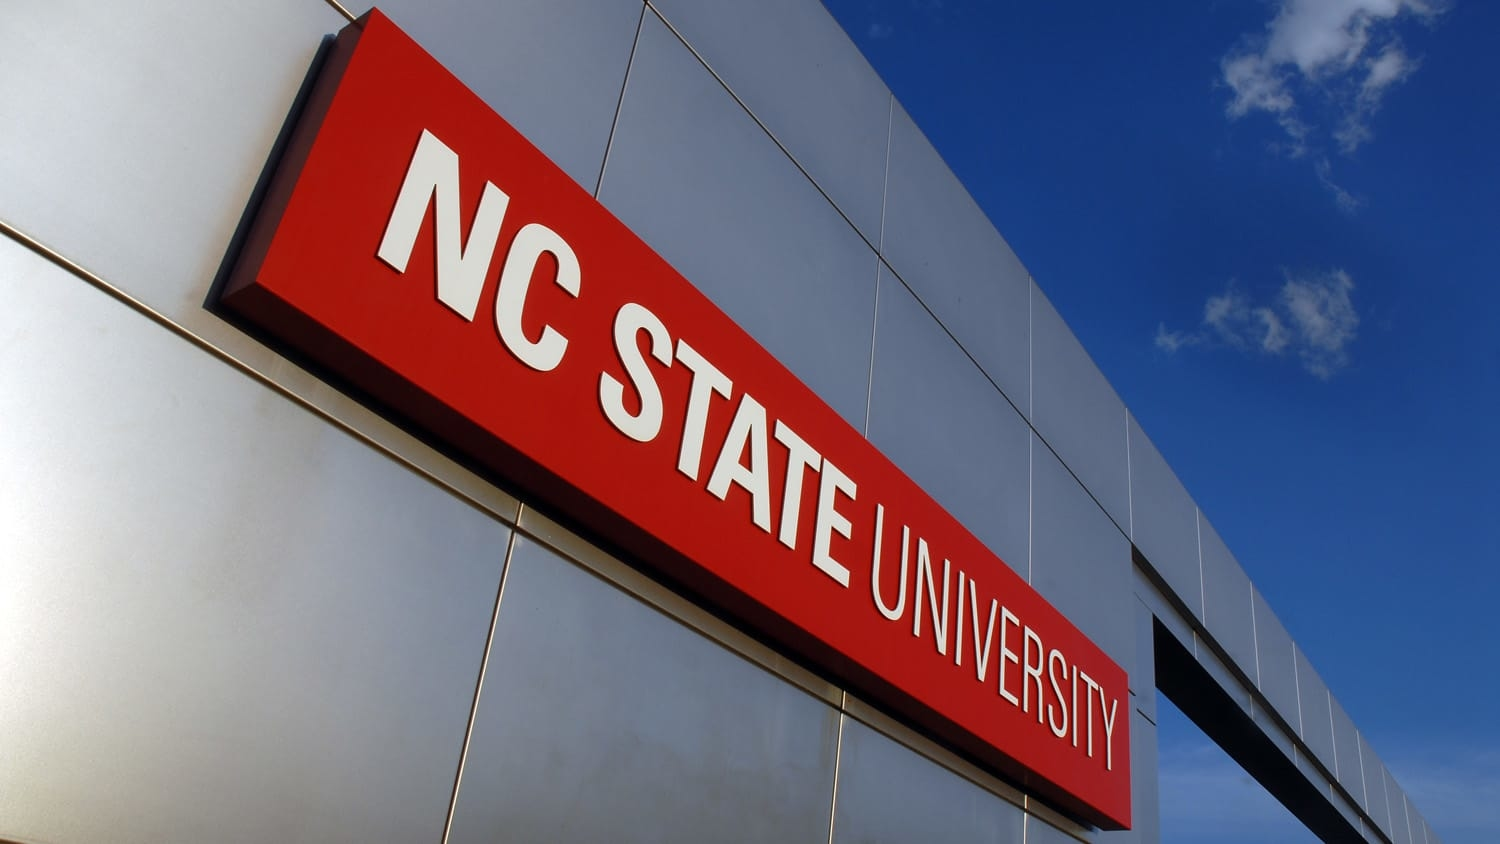 Campus gateway sign reading NC State University